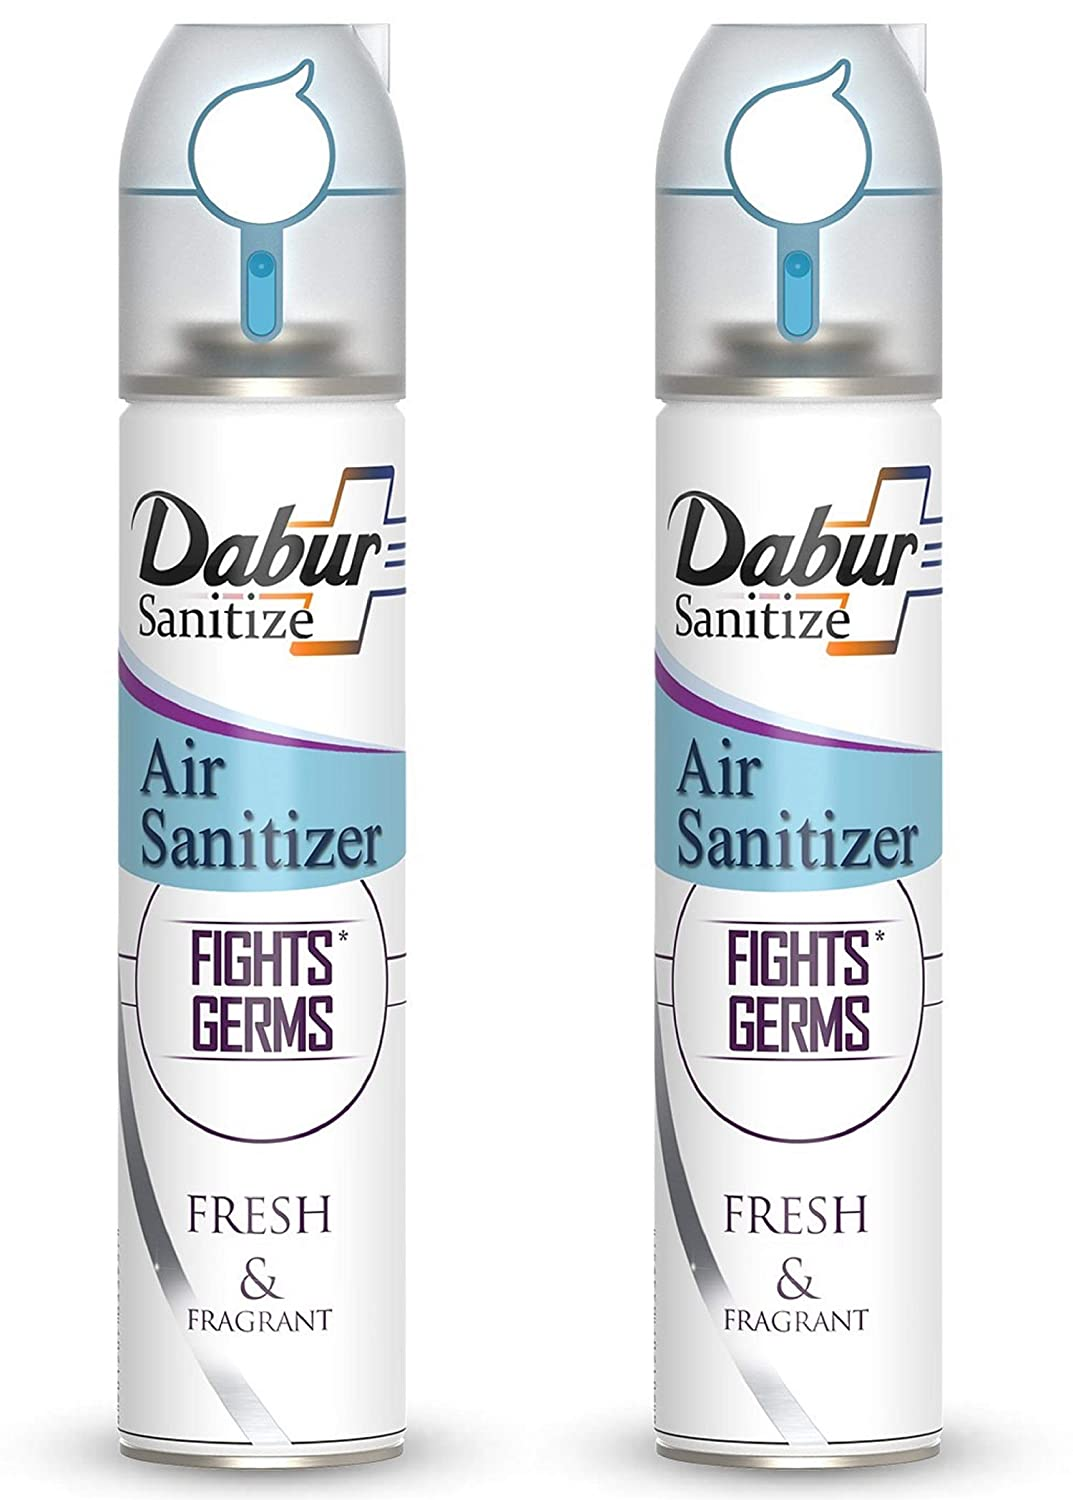 Dabur Sanitize Air Sanitizer | Protects from Air Borne Germs – 240 ml (Pack of 2)